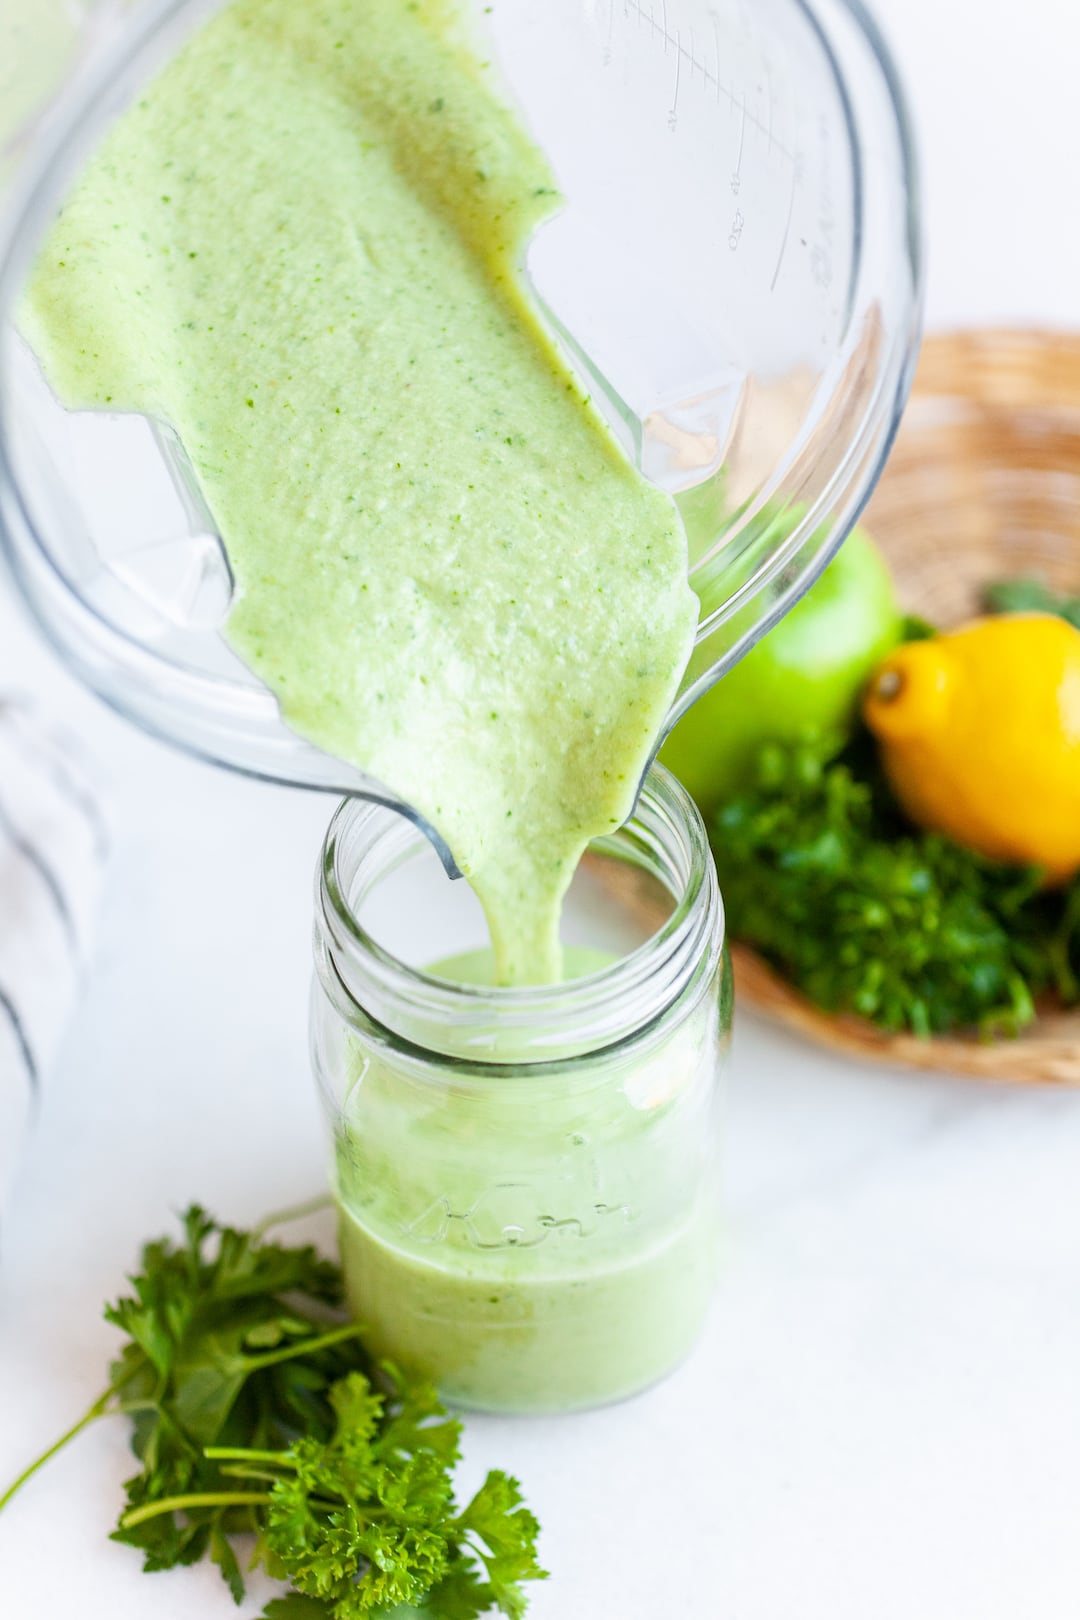 Pouring Best Ever Parsley Smoothie Recipe into a Jar